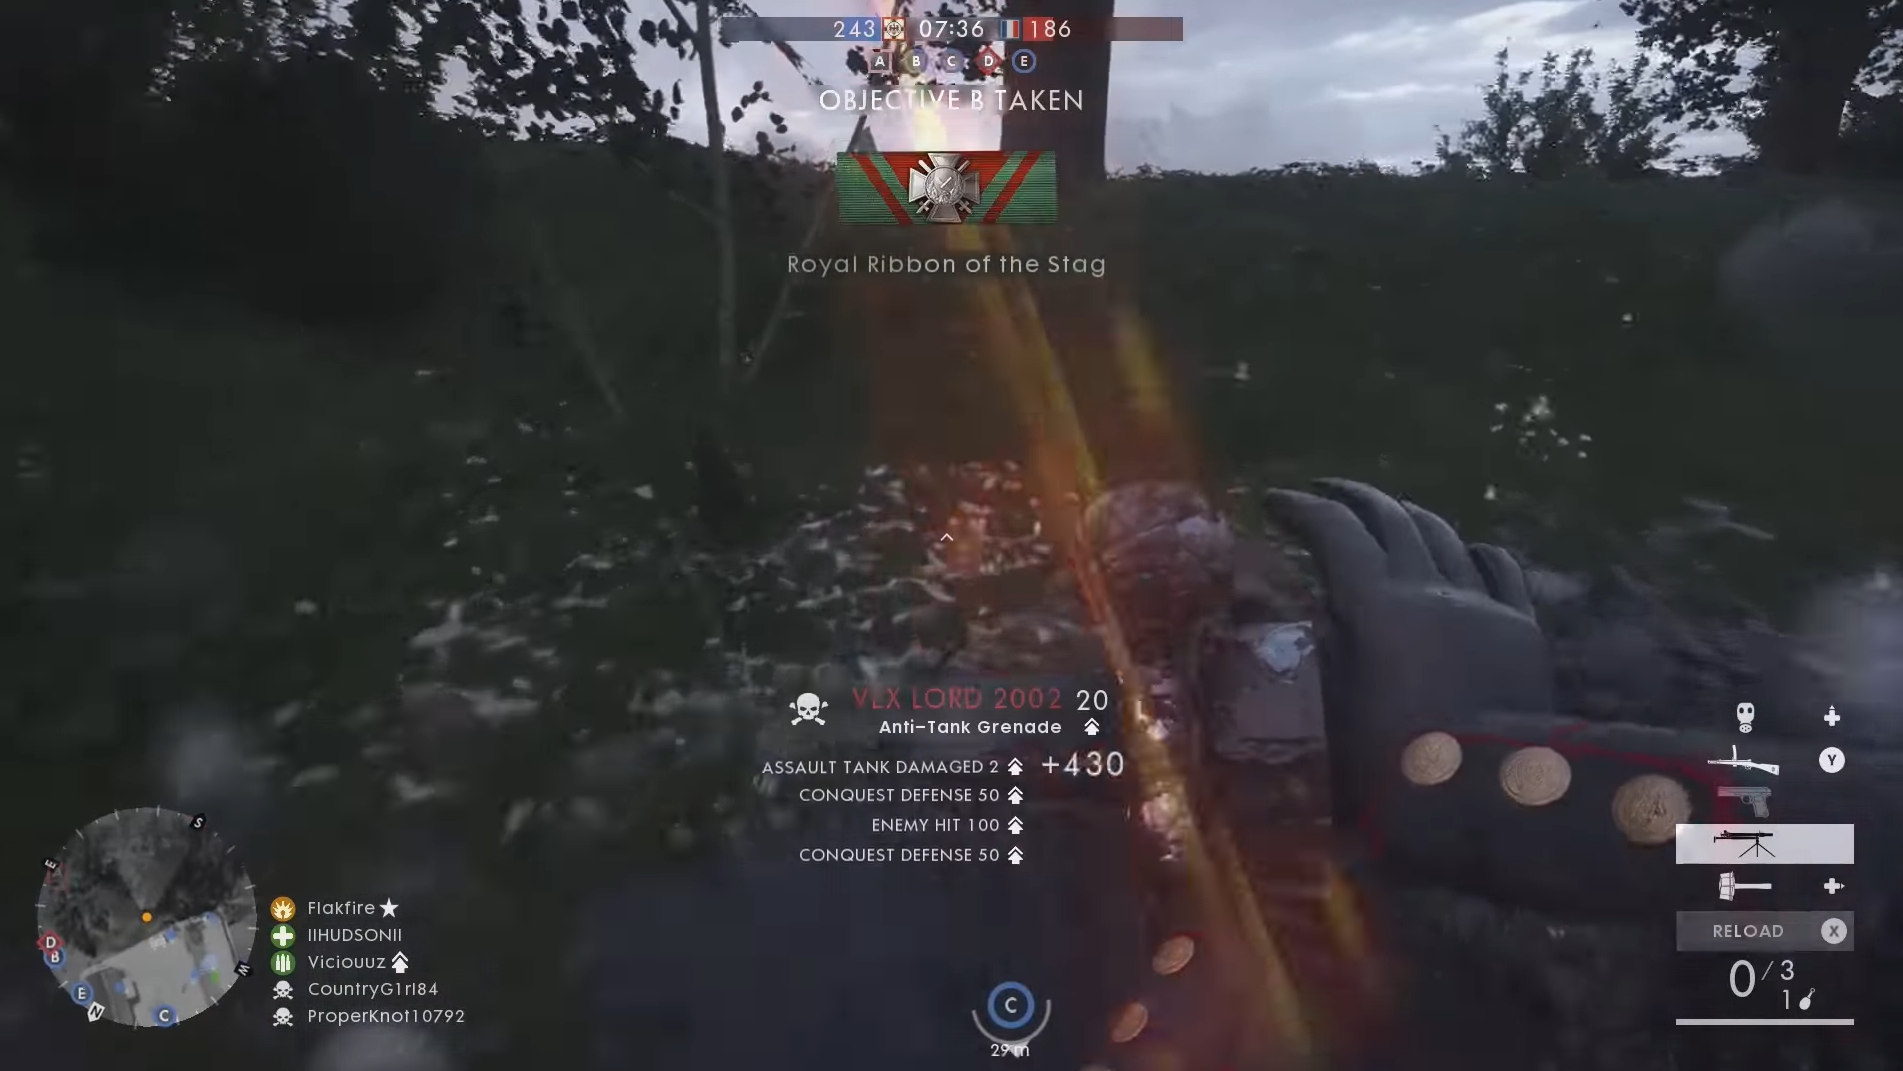 Battlefield 1 User Interface: Rewarding